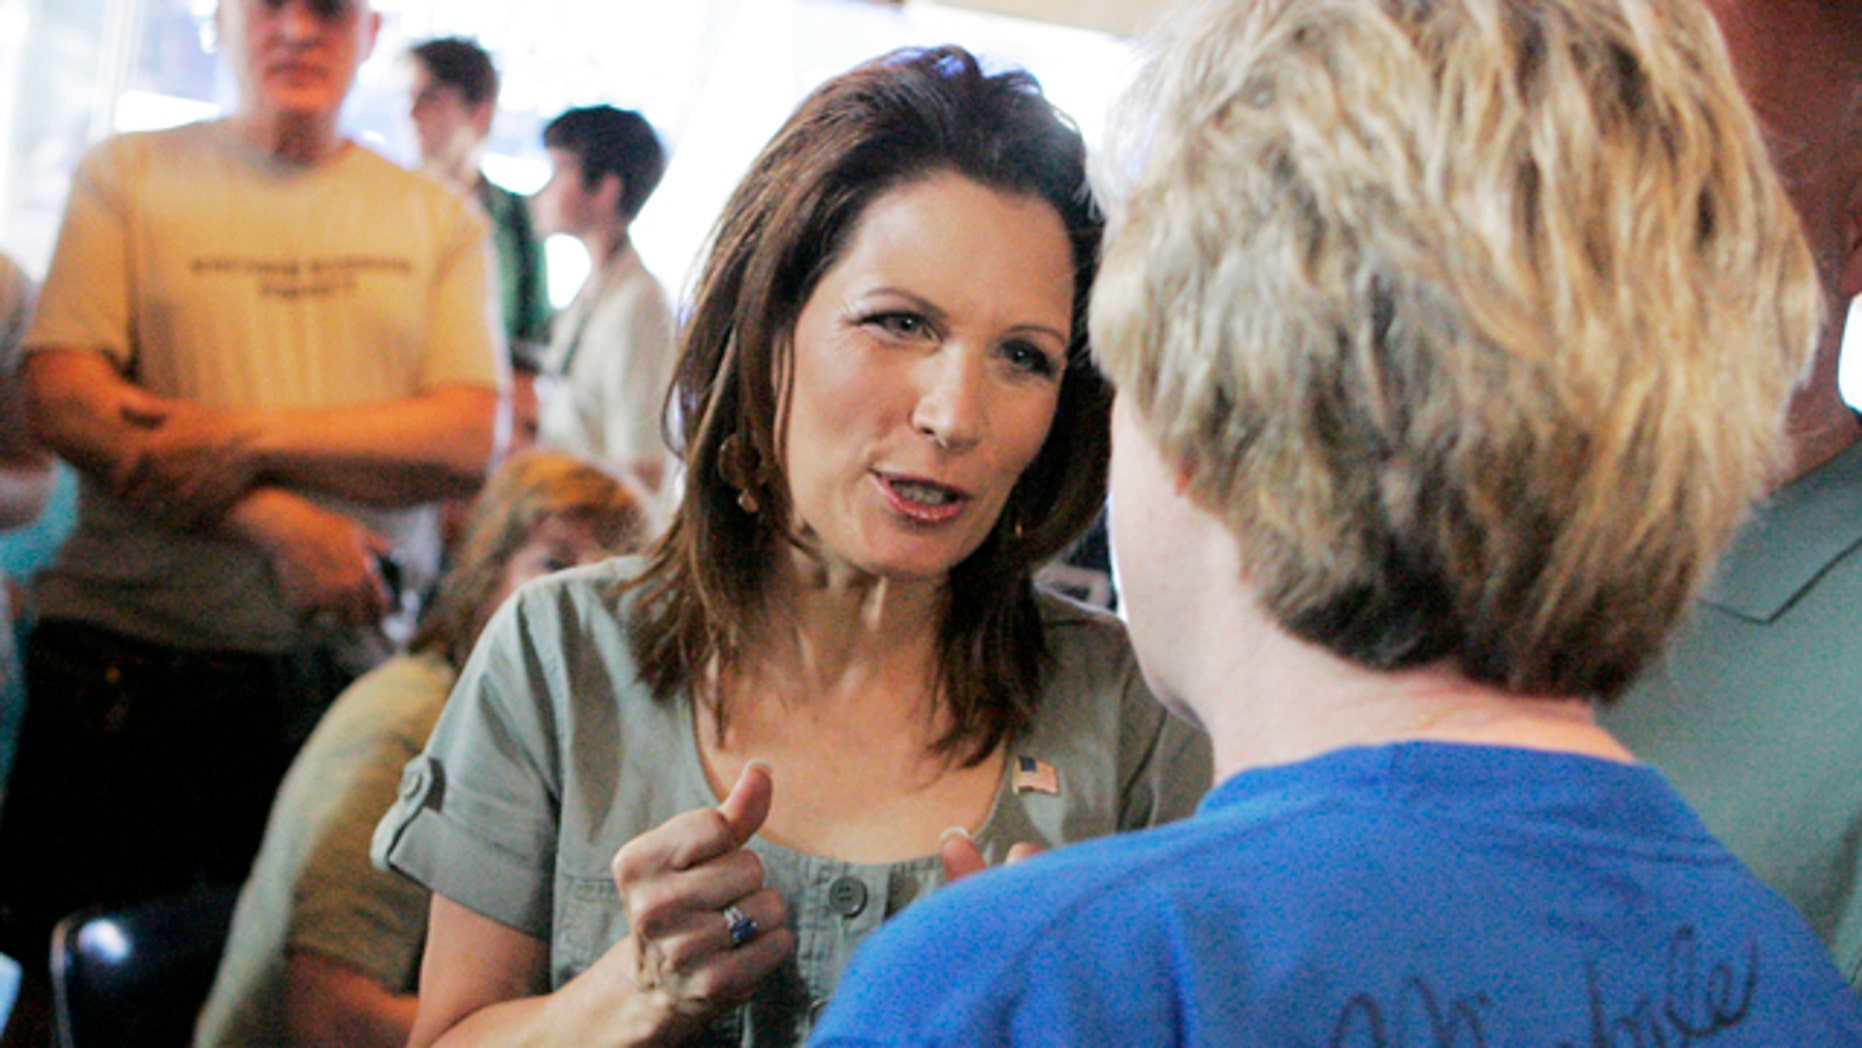 July 2: GOP presidential candidate Michele Bachmann speaks with a potential voter in Iowa City.